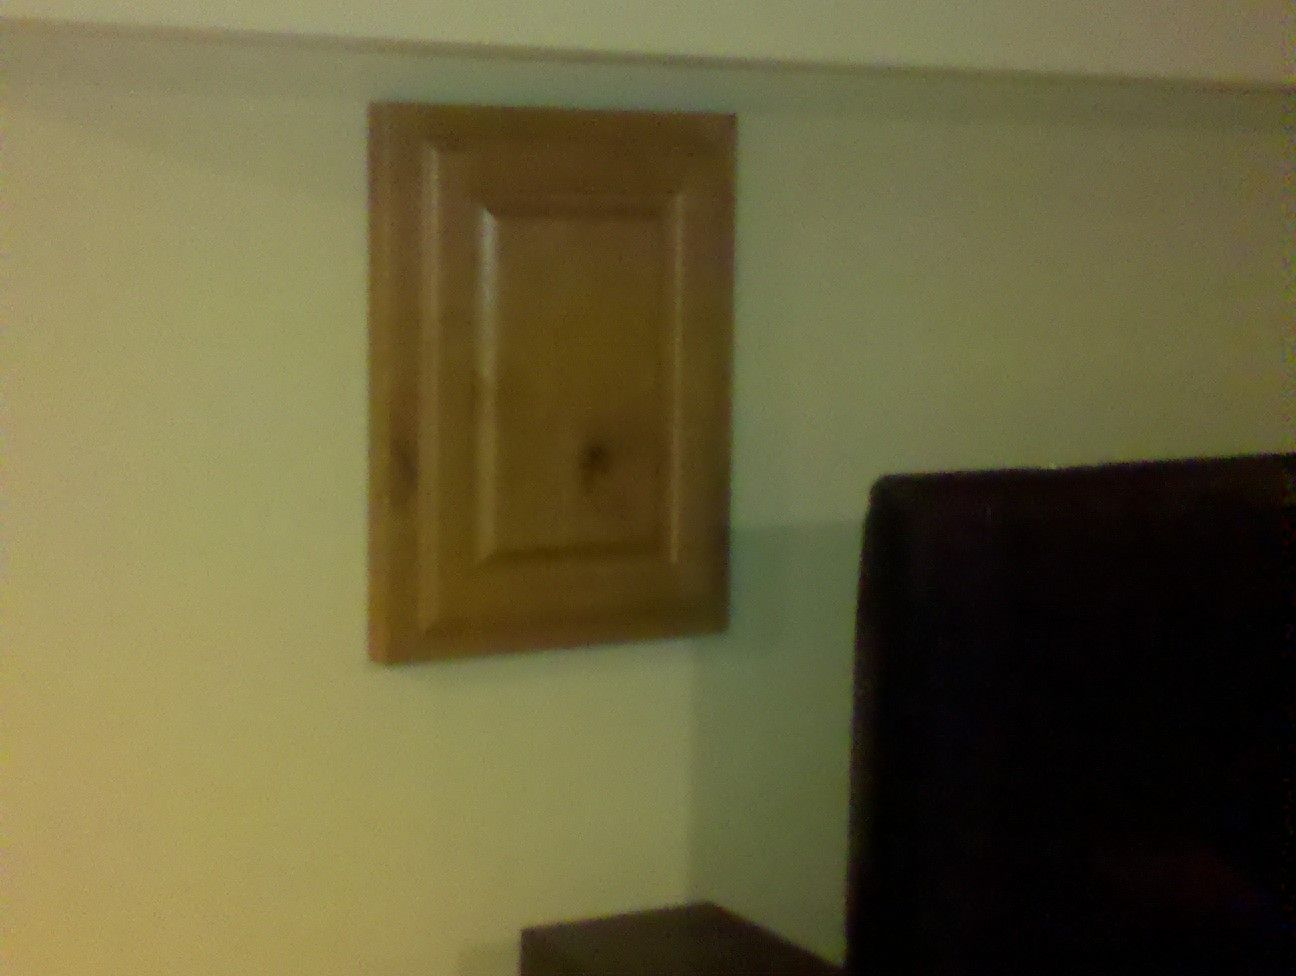 Hand Crafted Cabinet Door To Cover Access IE Breaker